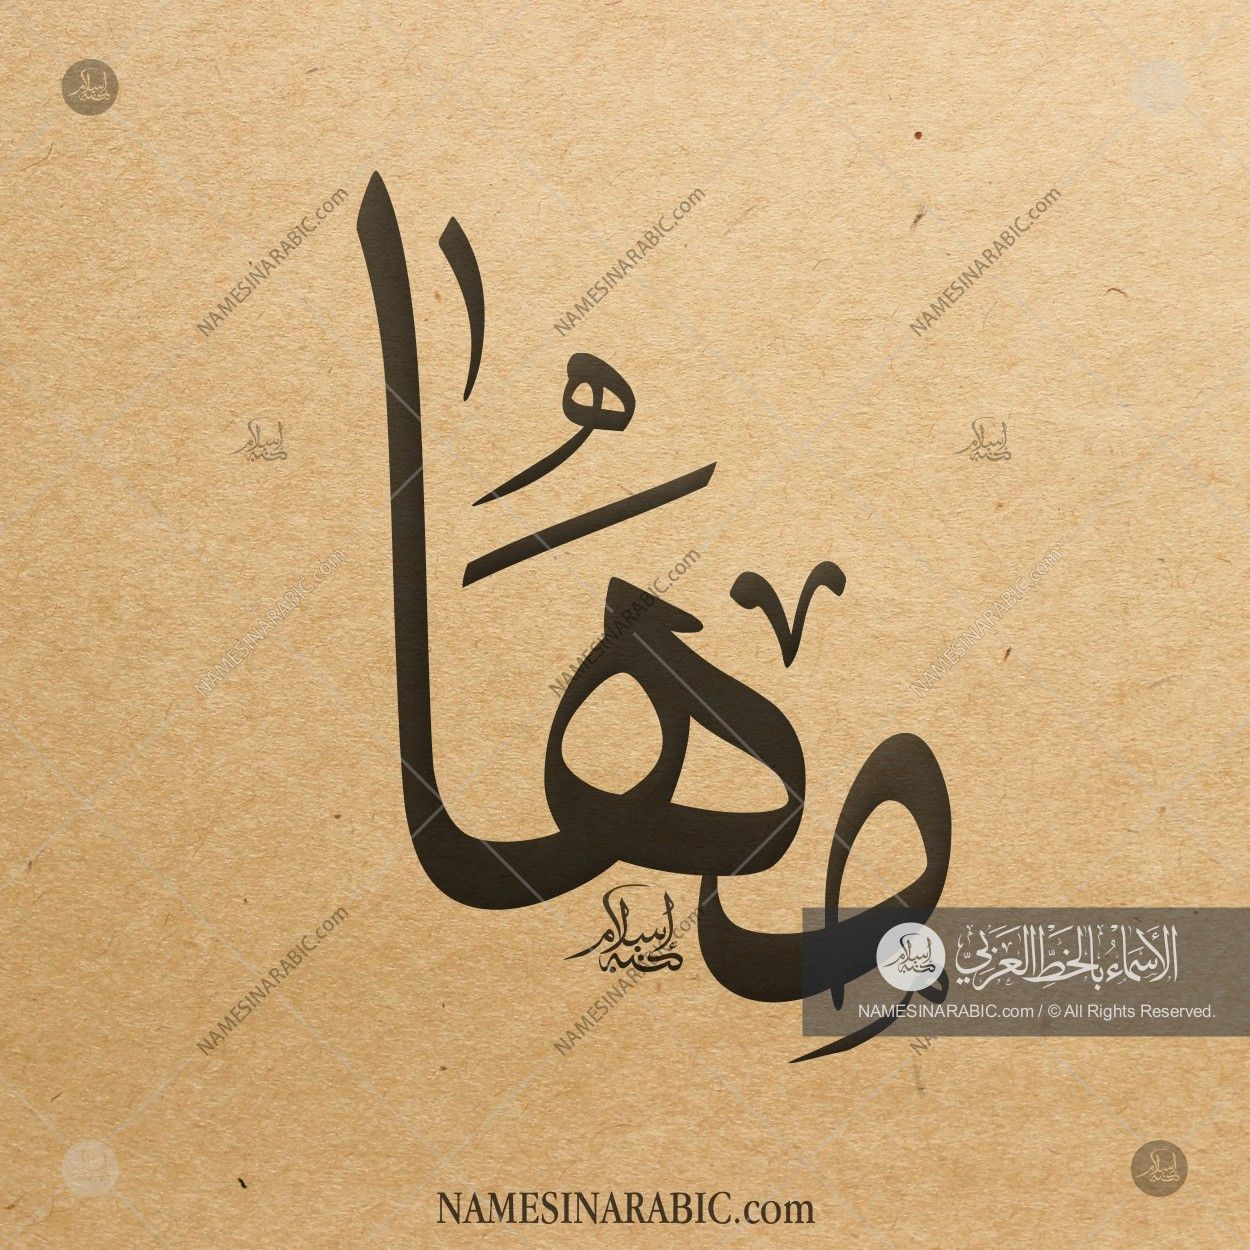 Maha مها Names In Arabic Calligraphy Name 5258 Calligraphy Name Hand Lettering Art Calligraphy